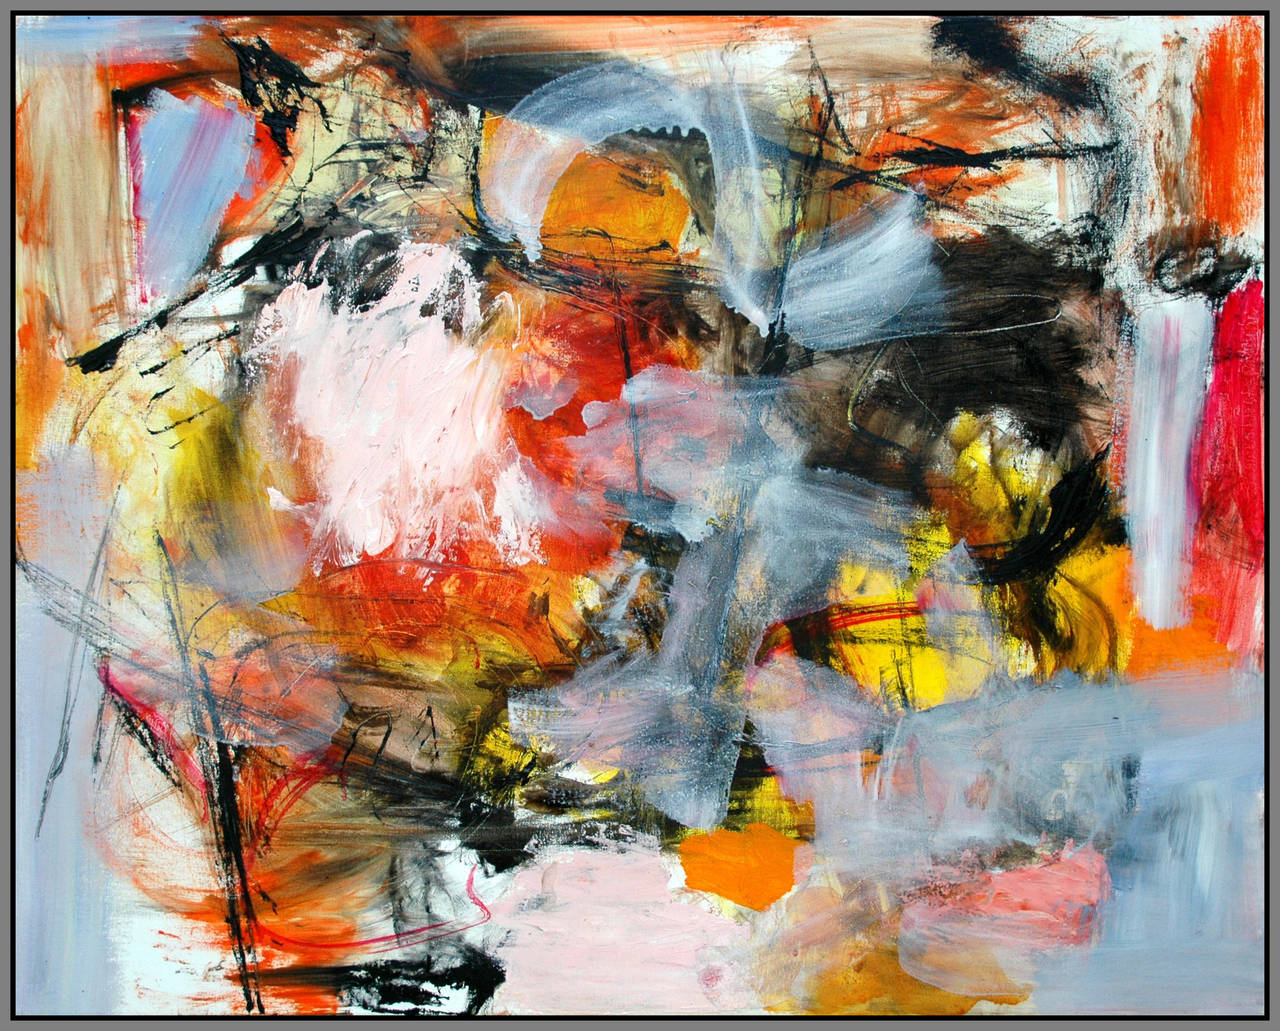 Denouement No 11 - vibrant red, orange, yellow, gestural abstract, oil on canvas